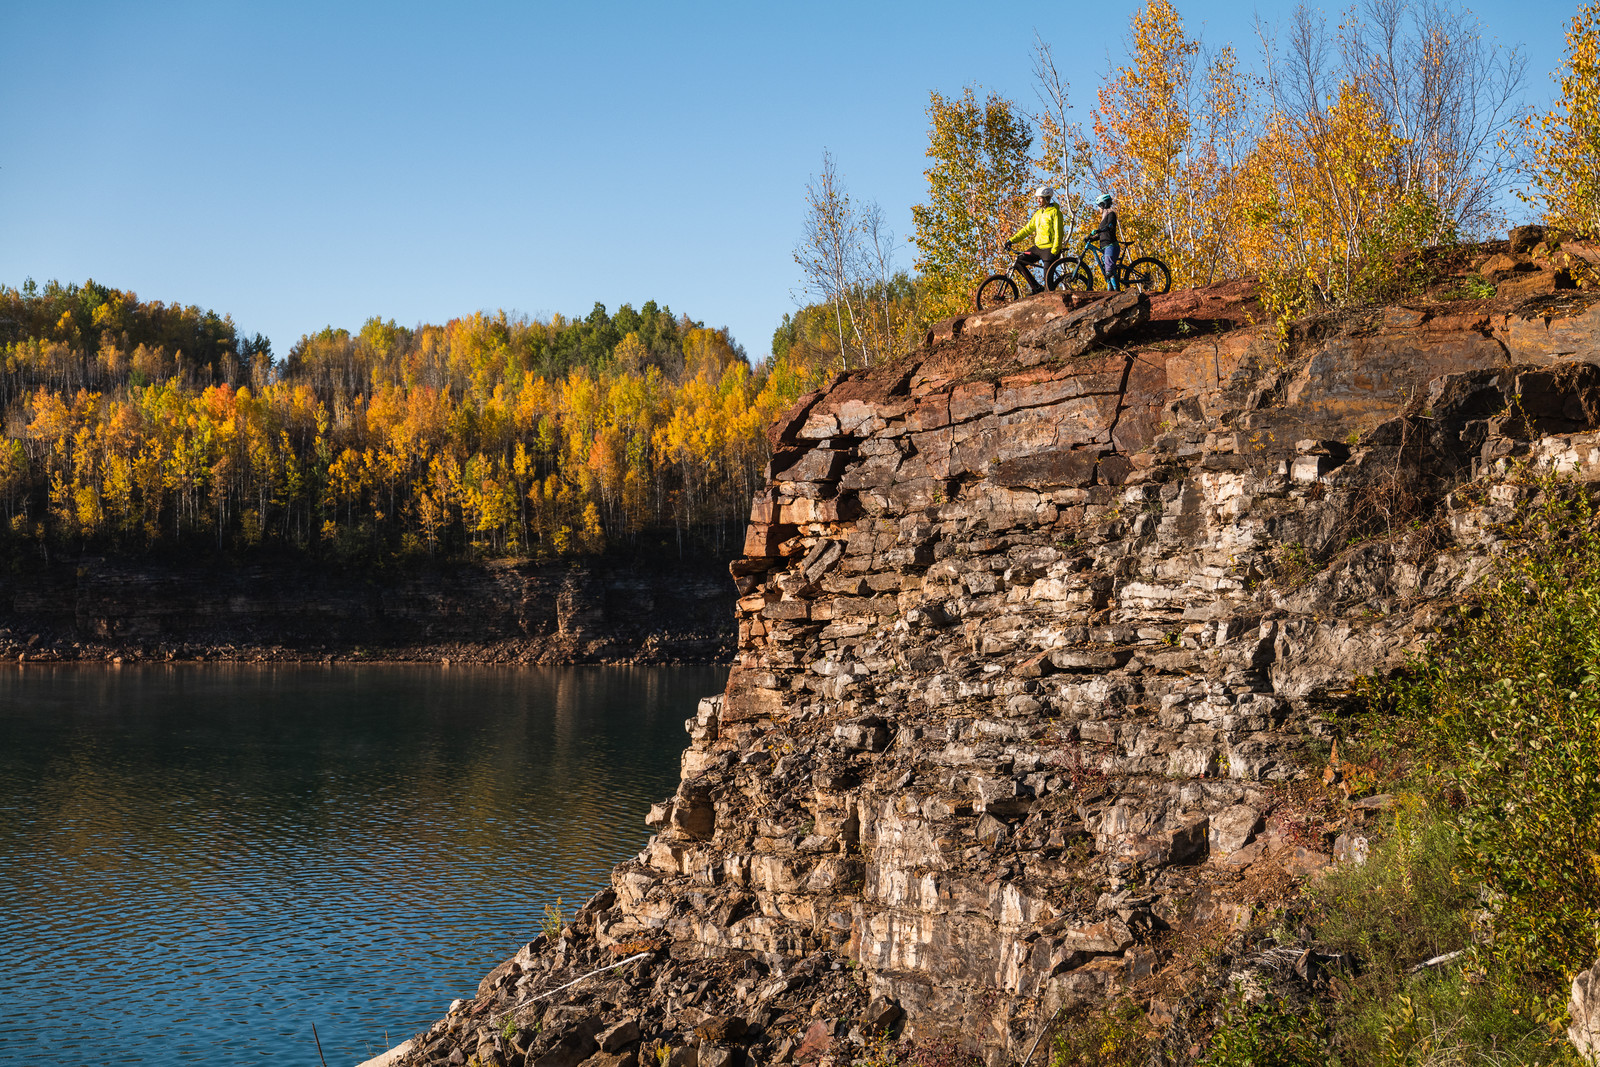 Northern Minnesota Looking Primo for MTB - Ride the Range